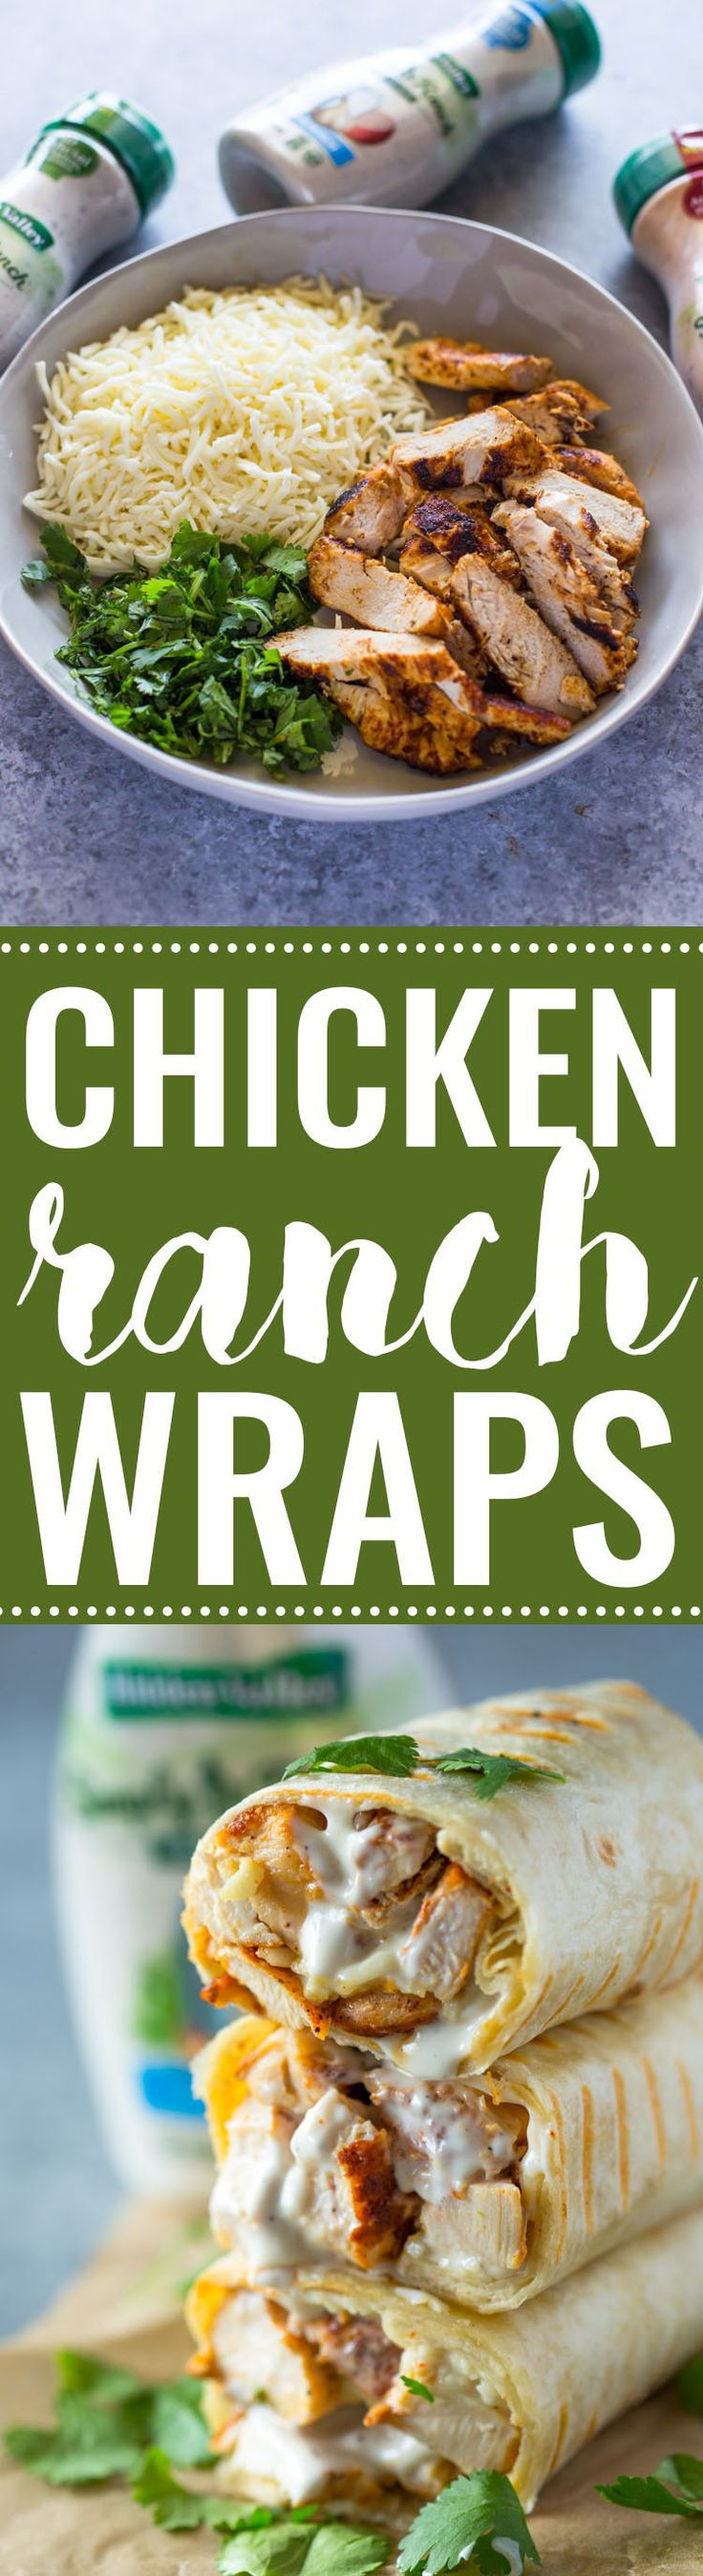 Chicken Ranch Wraps - Tap the link to shop on our official online store! You can also join our affiliate and/or rewards programs for FREE!